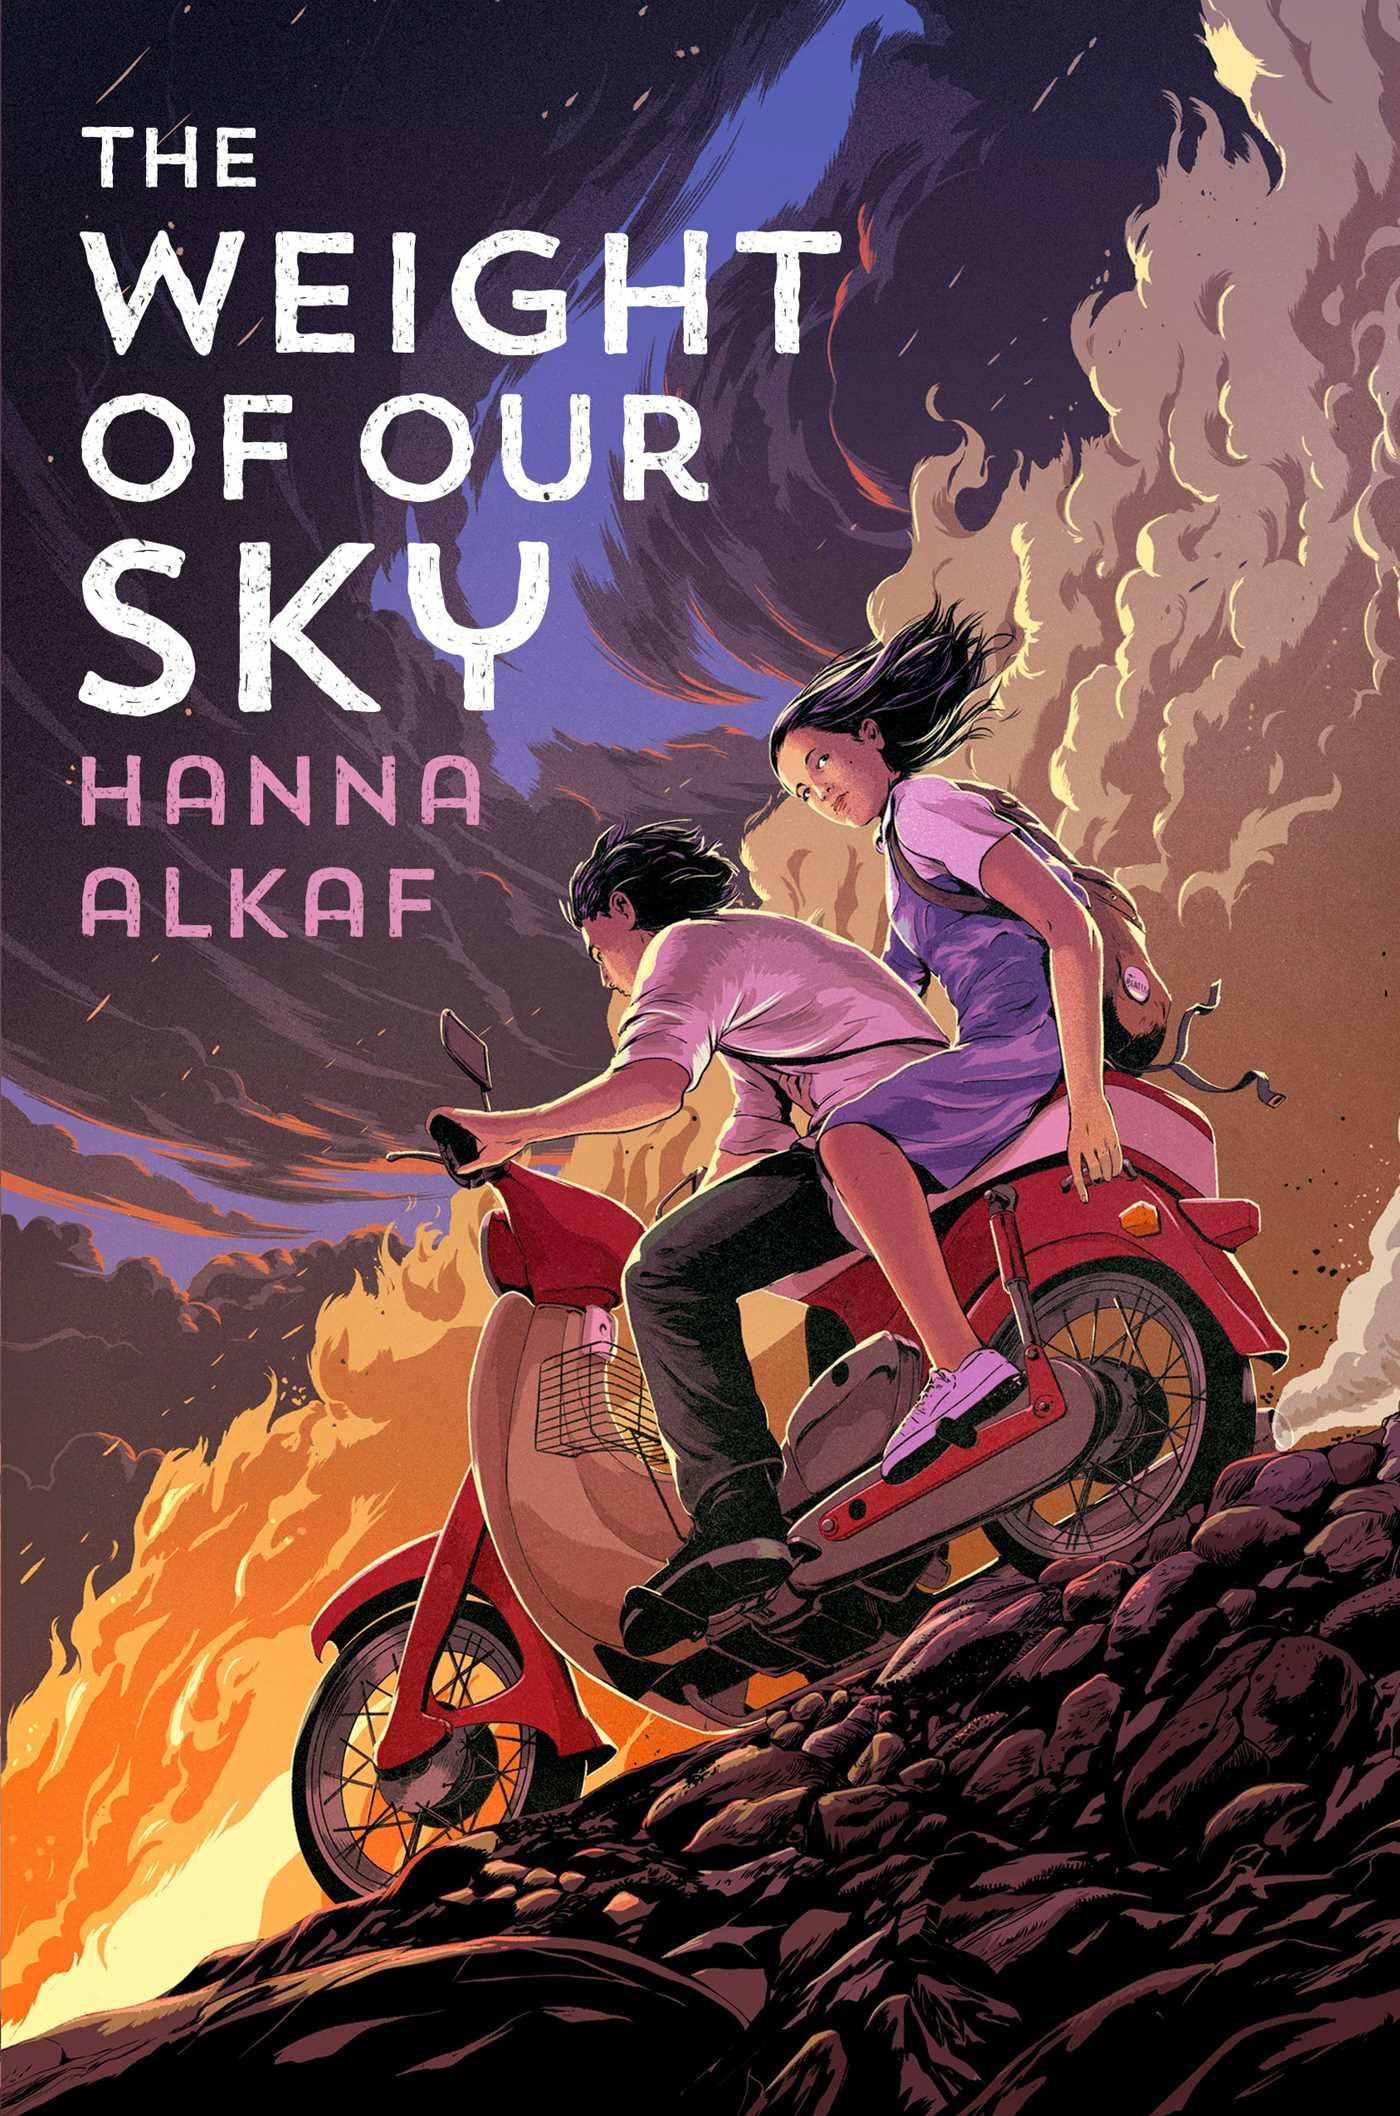 Amazon.com: The Weight of Our Sky (9781534426085): Alkaf, Hanna: Books